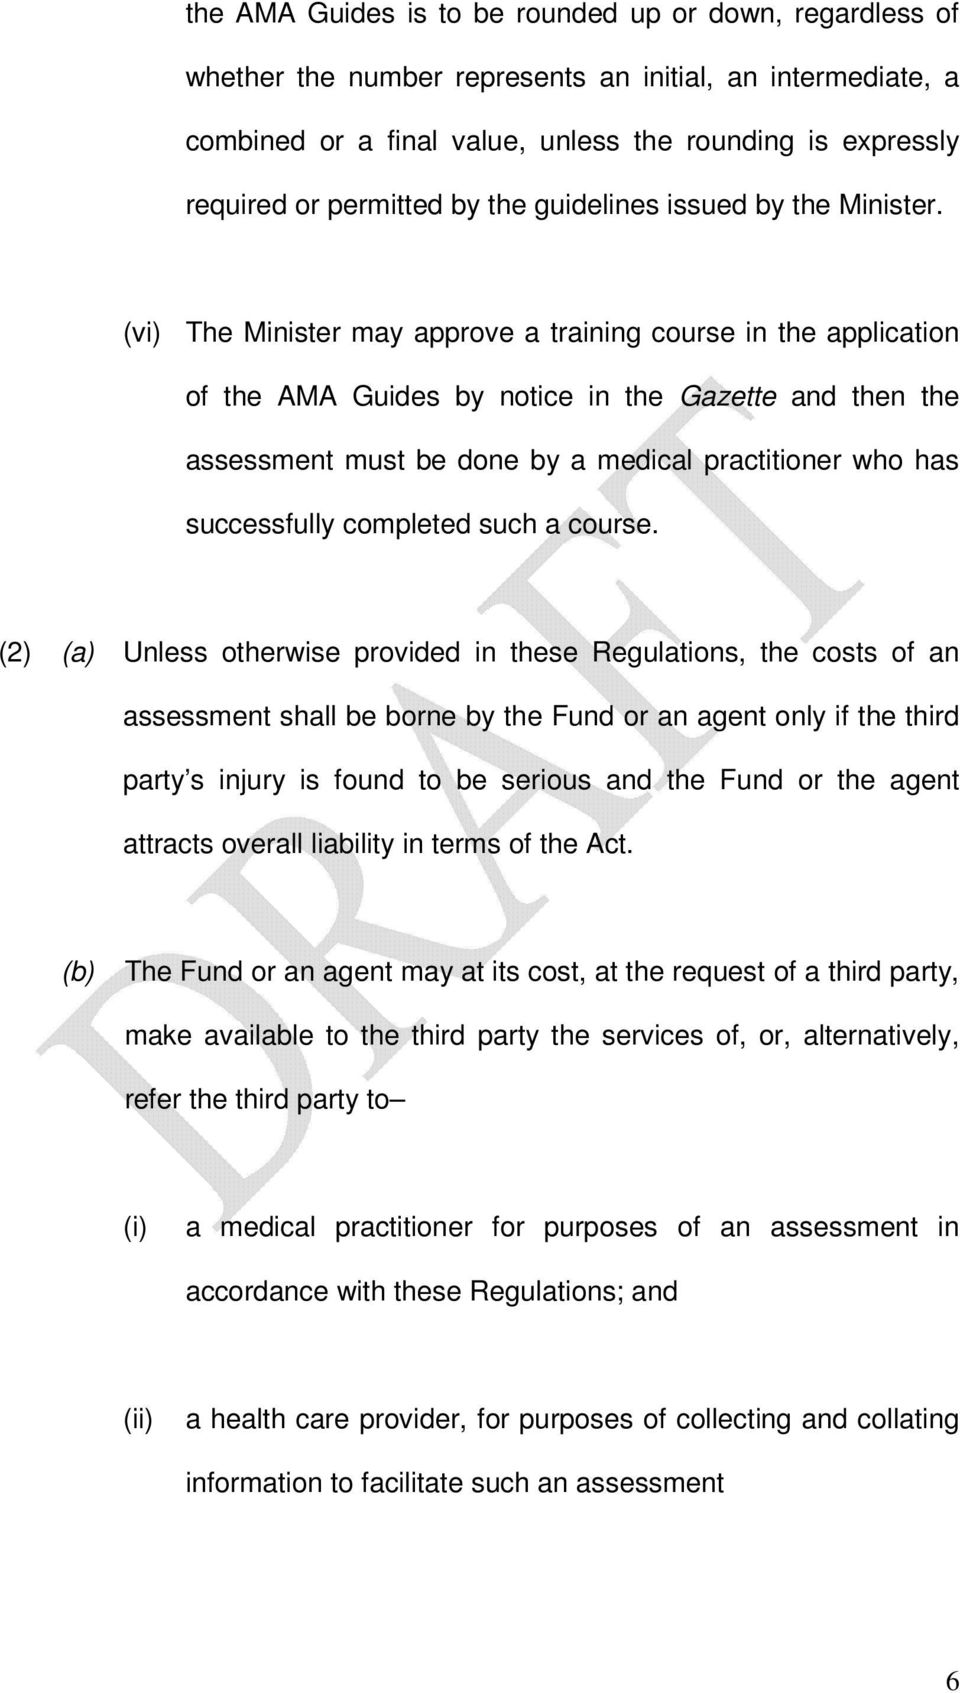 (vi) The Minister may approve a training course in the application of the AMA Guides by notice in the Gazette and then the assessment must be done by a medical practitioner who has successfully